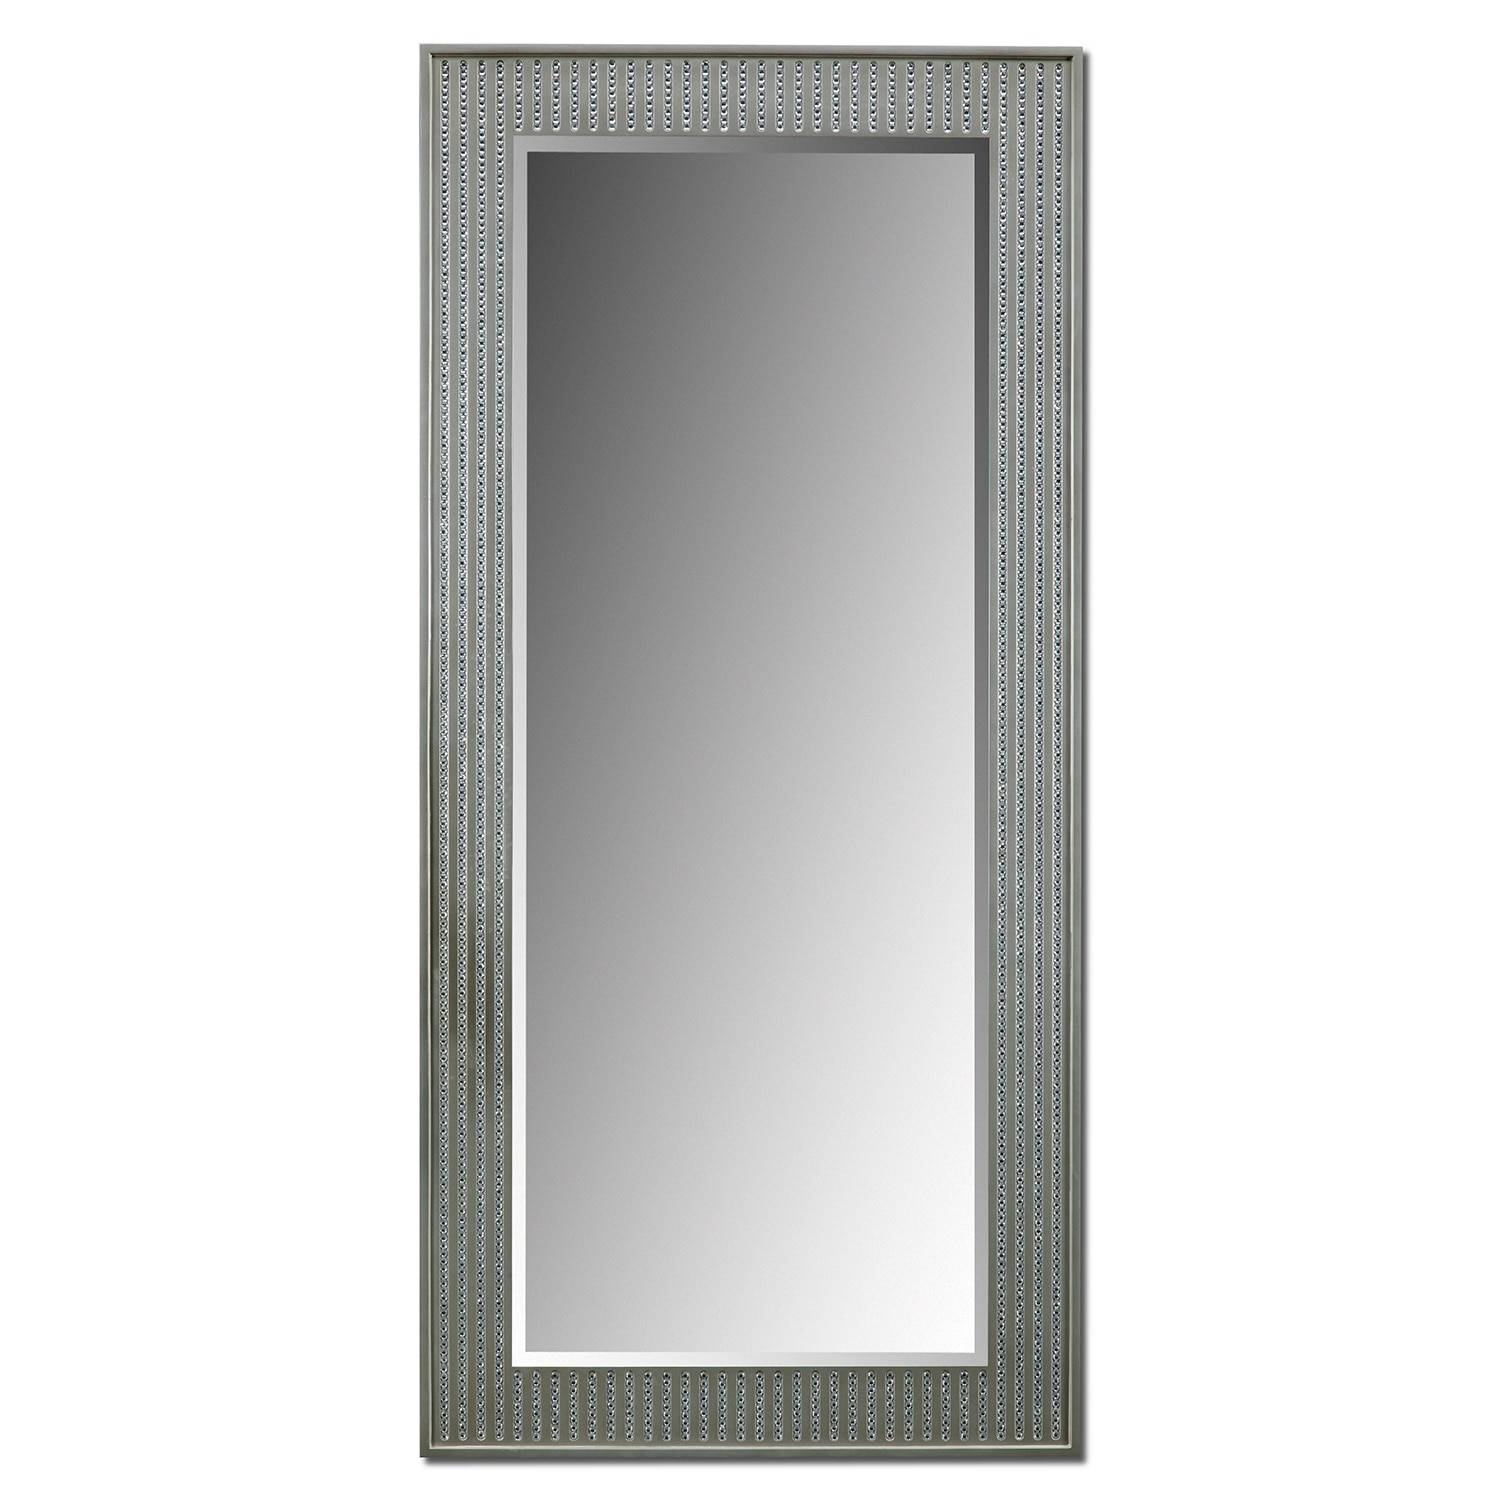 Wall & Floor Mirrors | Value City Furniture pertaining to Silver Cheval Mirrors (Image 24 of 25)